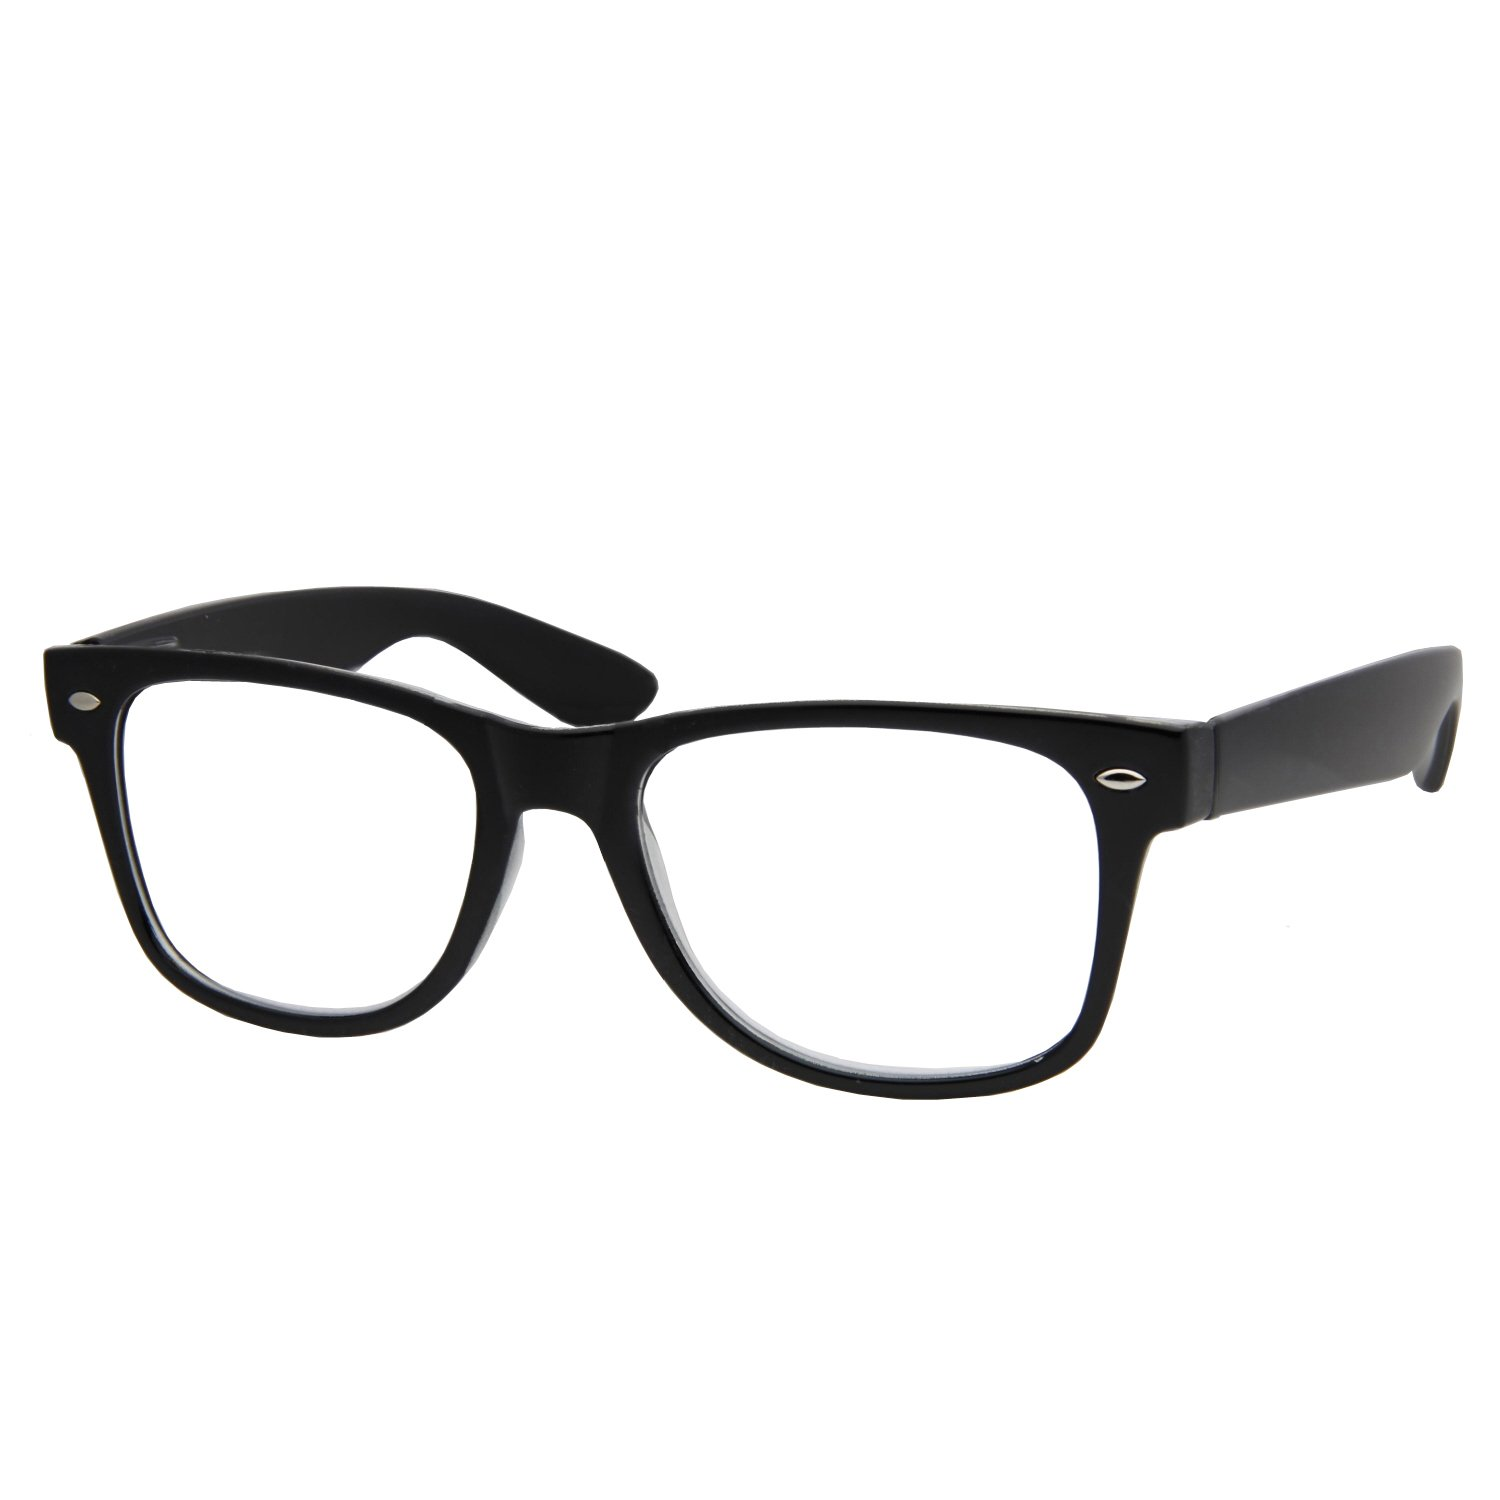 fed023e4ed01 Amazon.com  High Magnification Power Readers Reading Glasses 4.00-6.00 Black 4.00   Clothing